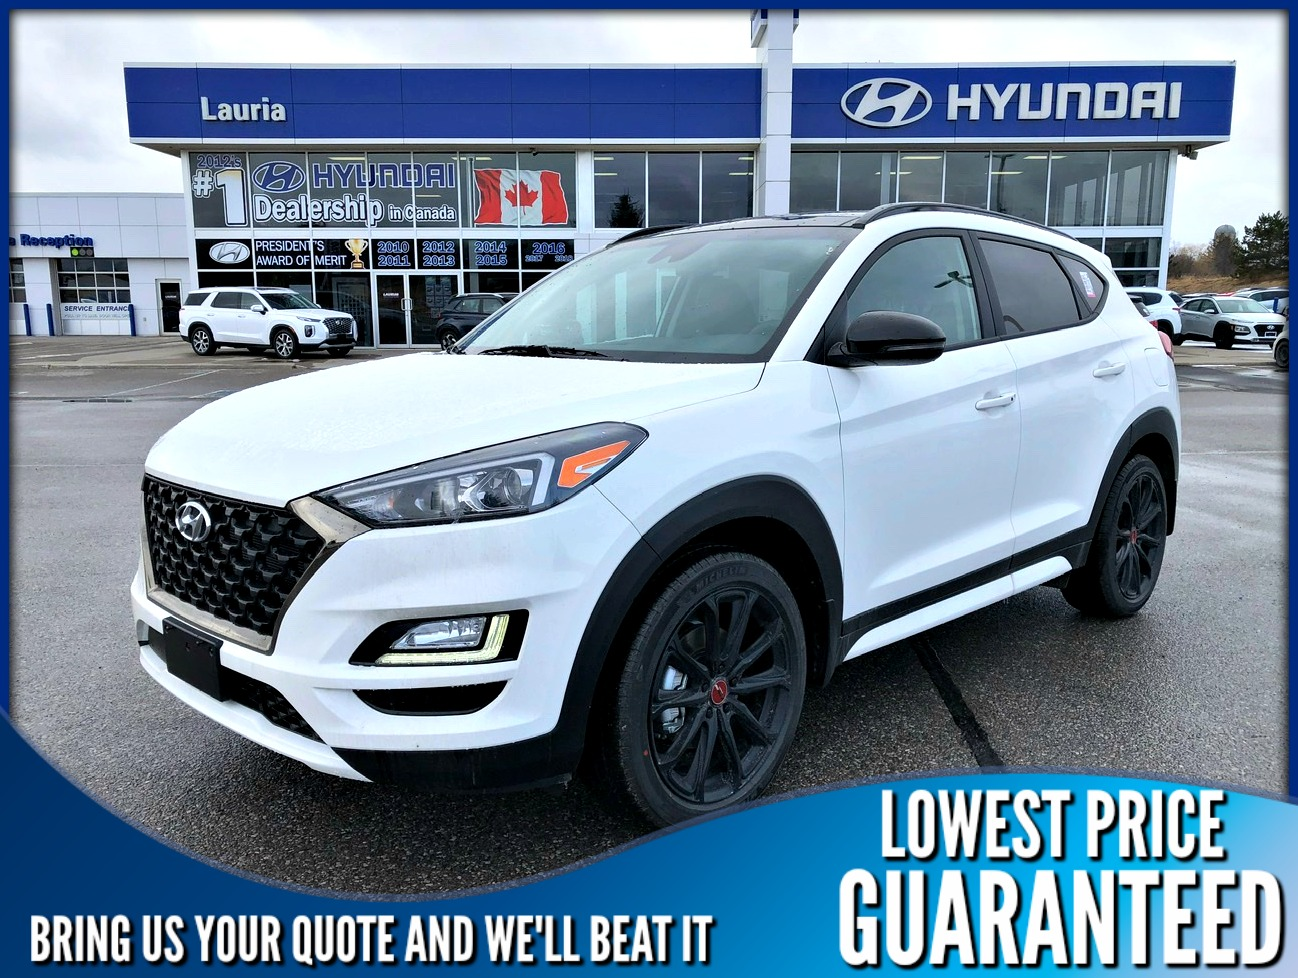 New 2020 Hyundai Tucson 2.4L AWD Urban Edition